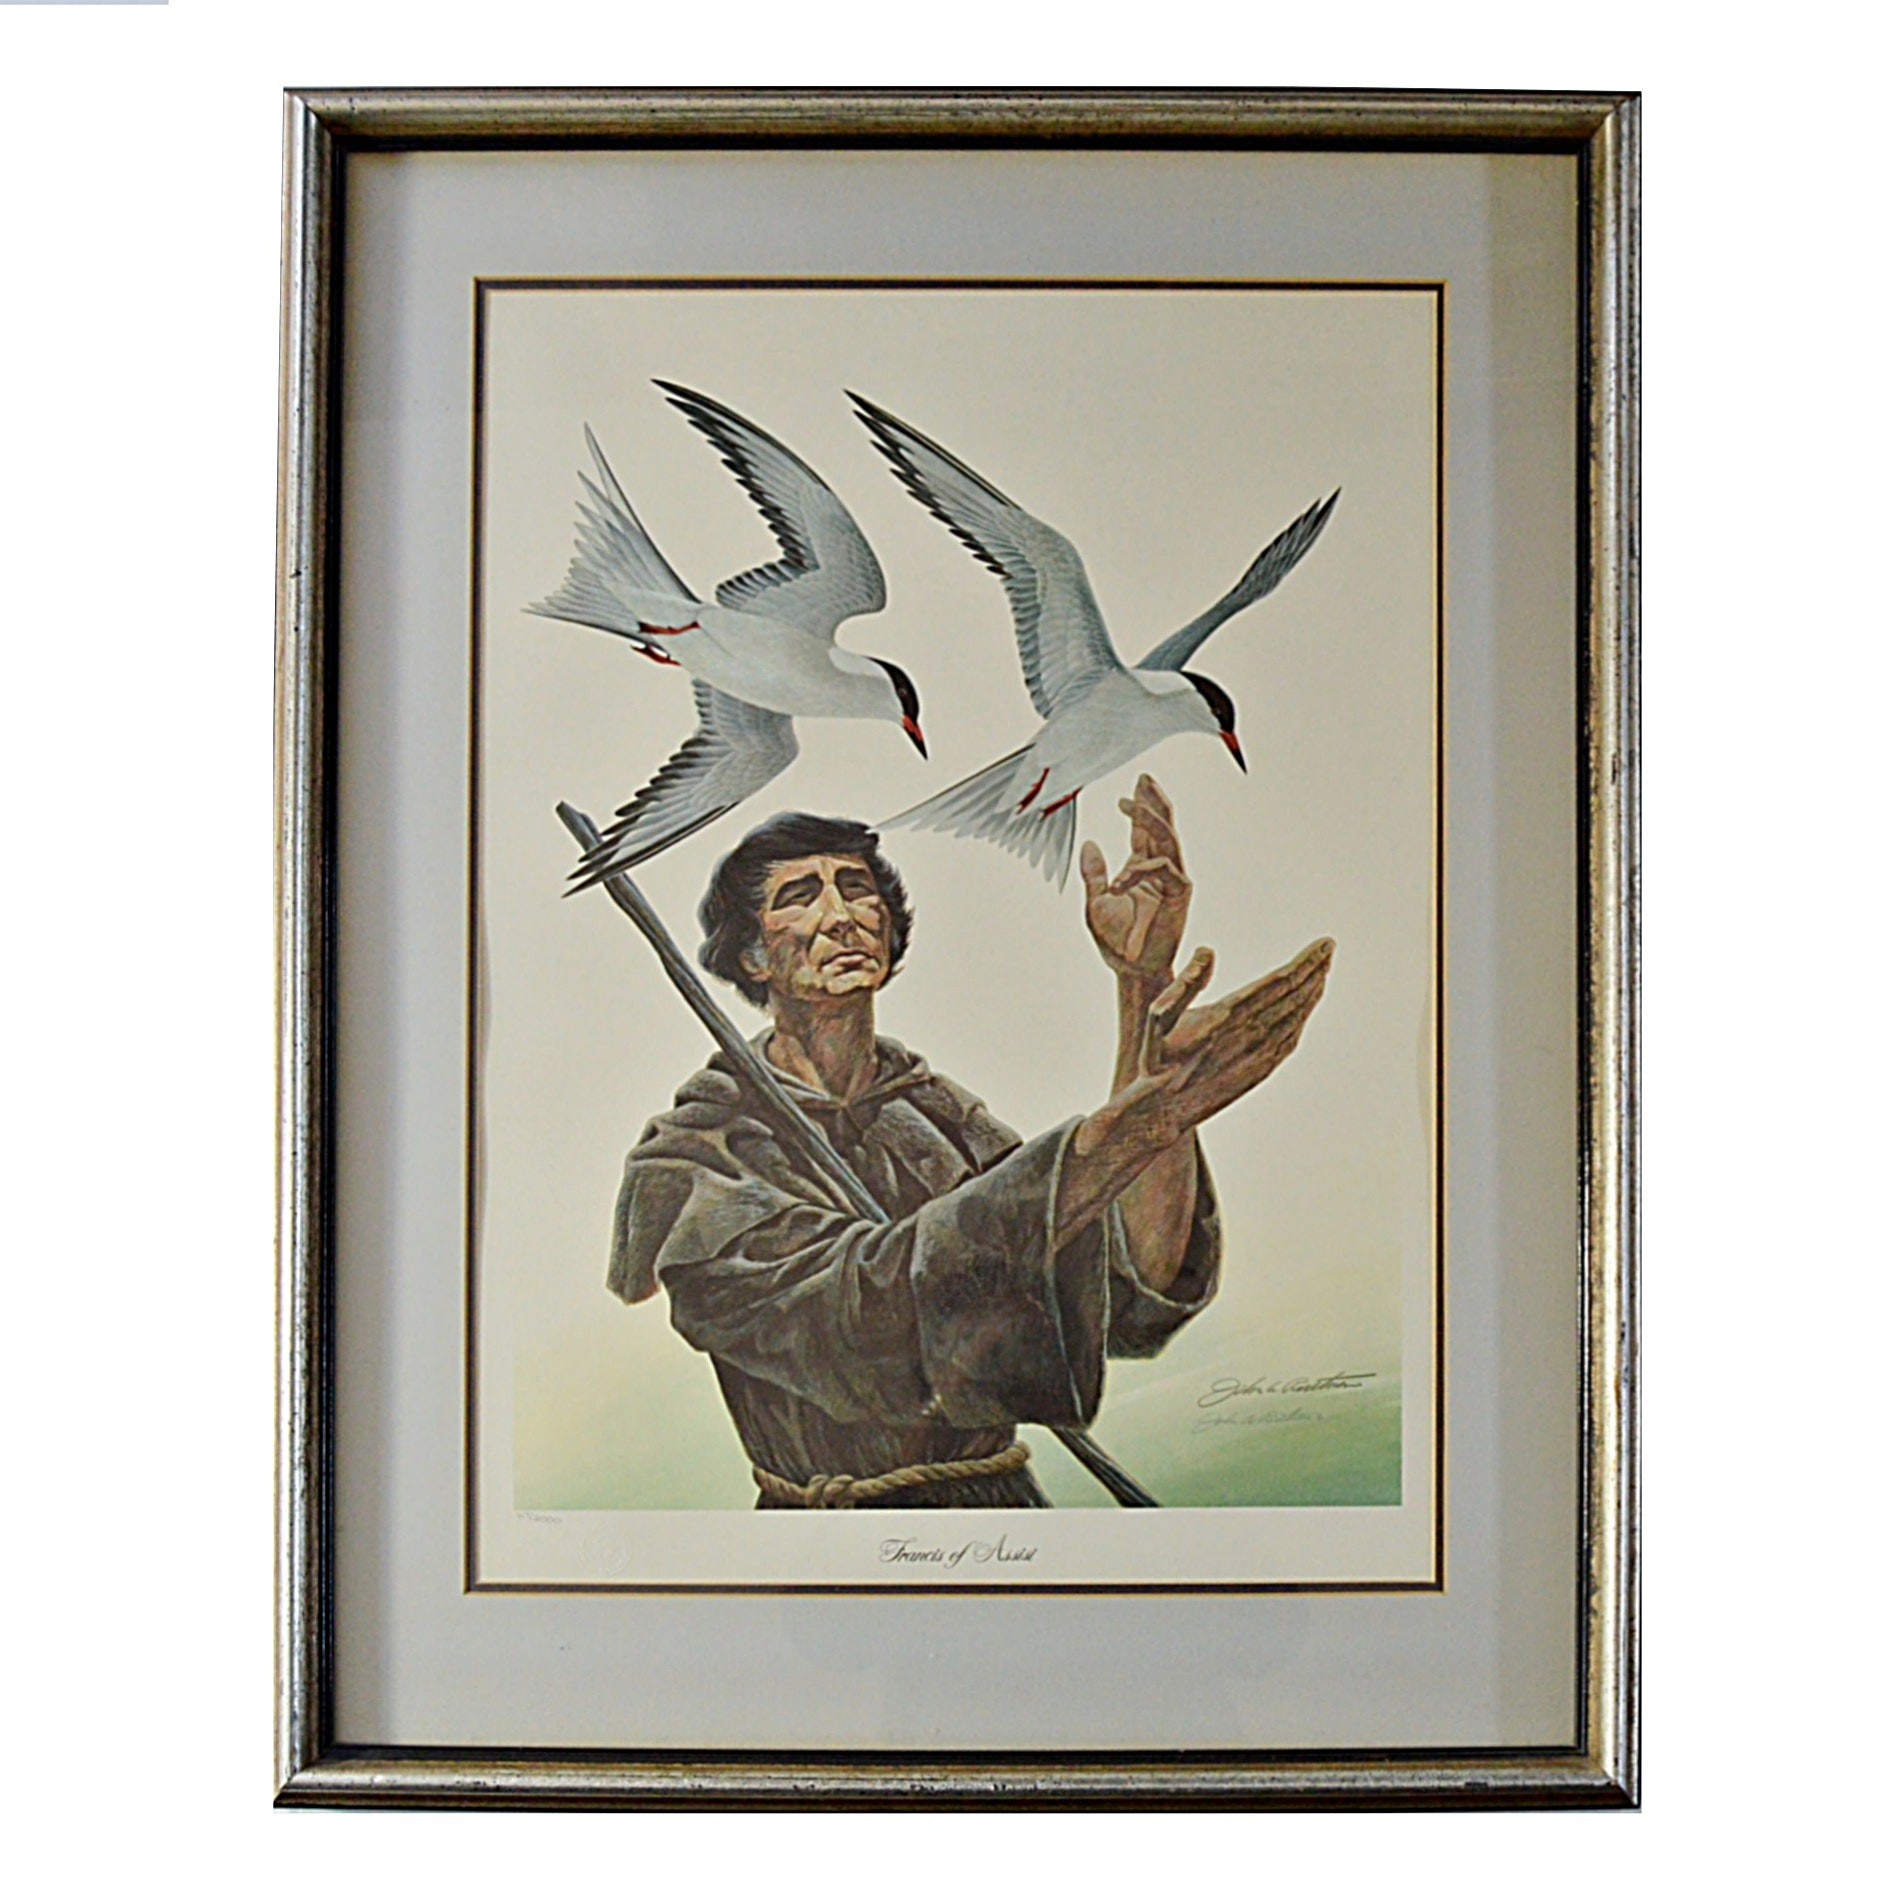 """John Ruthven Signed Limited Edition Offset Lithograph """"St.Francis of Assisi"""""""